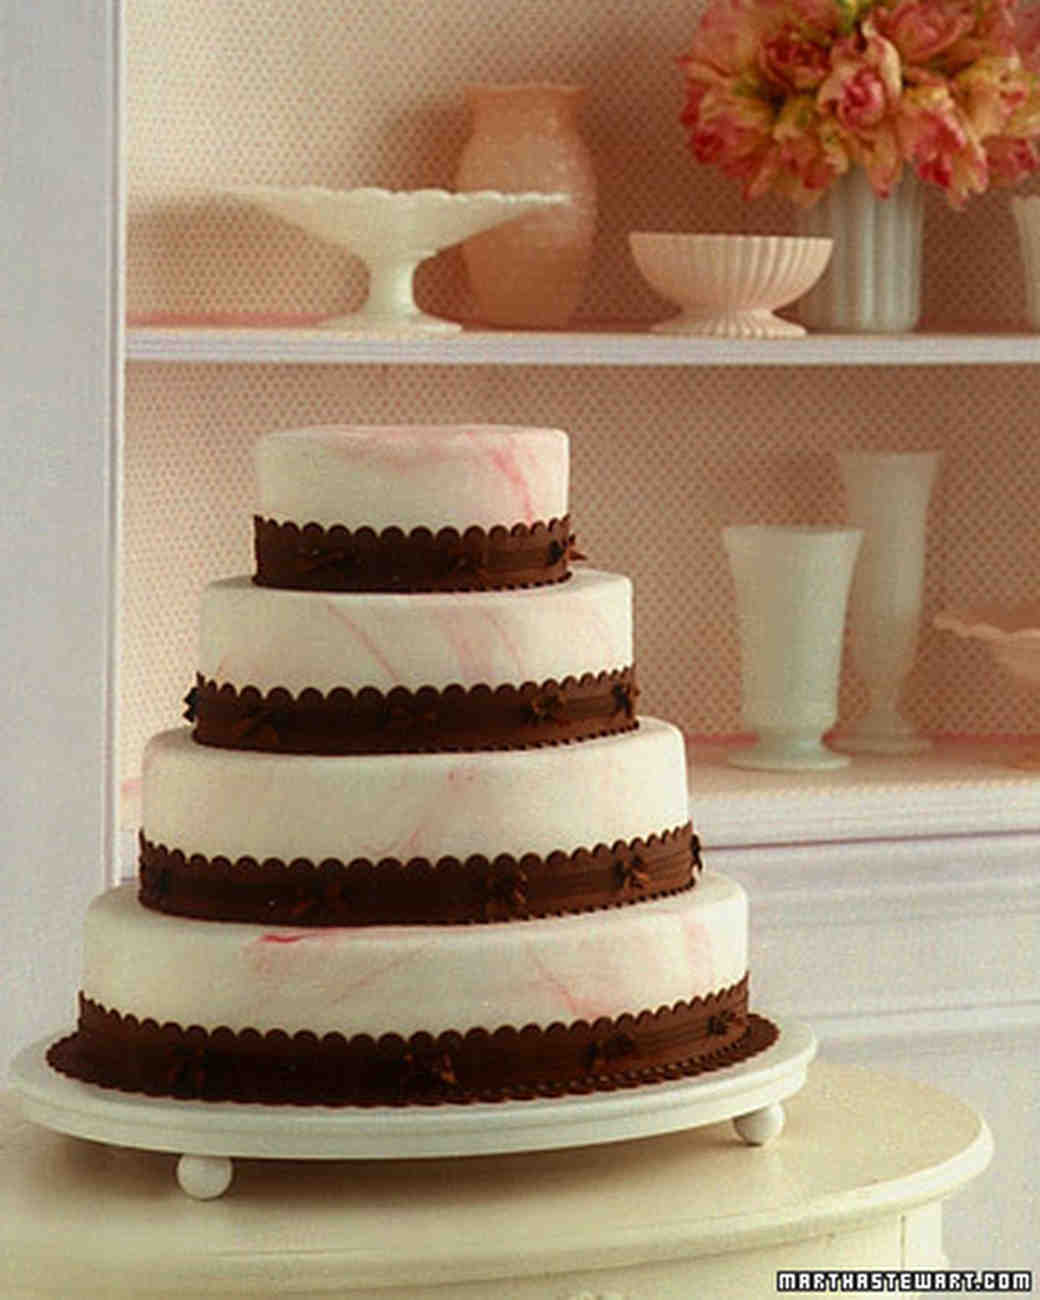 4 Wedding Cakes That Get A Jolt Of Delicious Flavor From Coffee